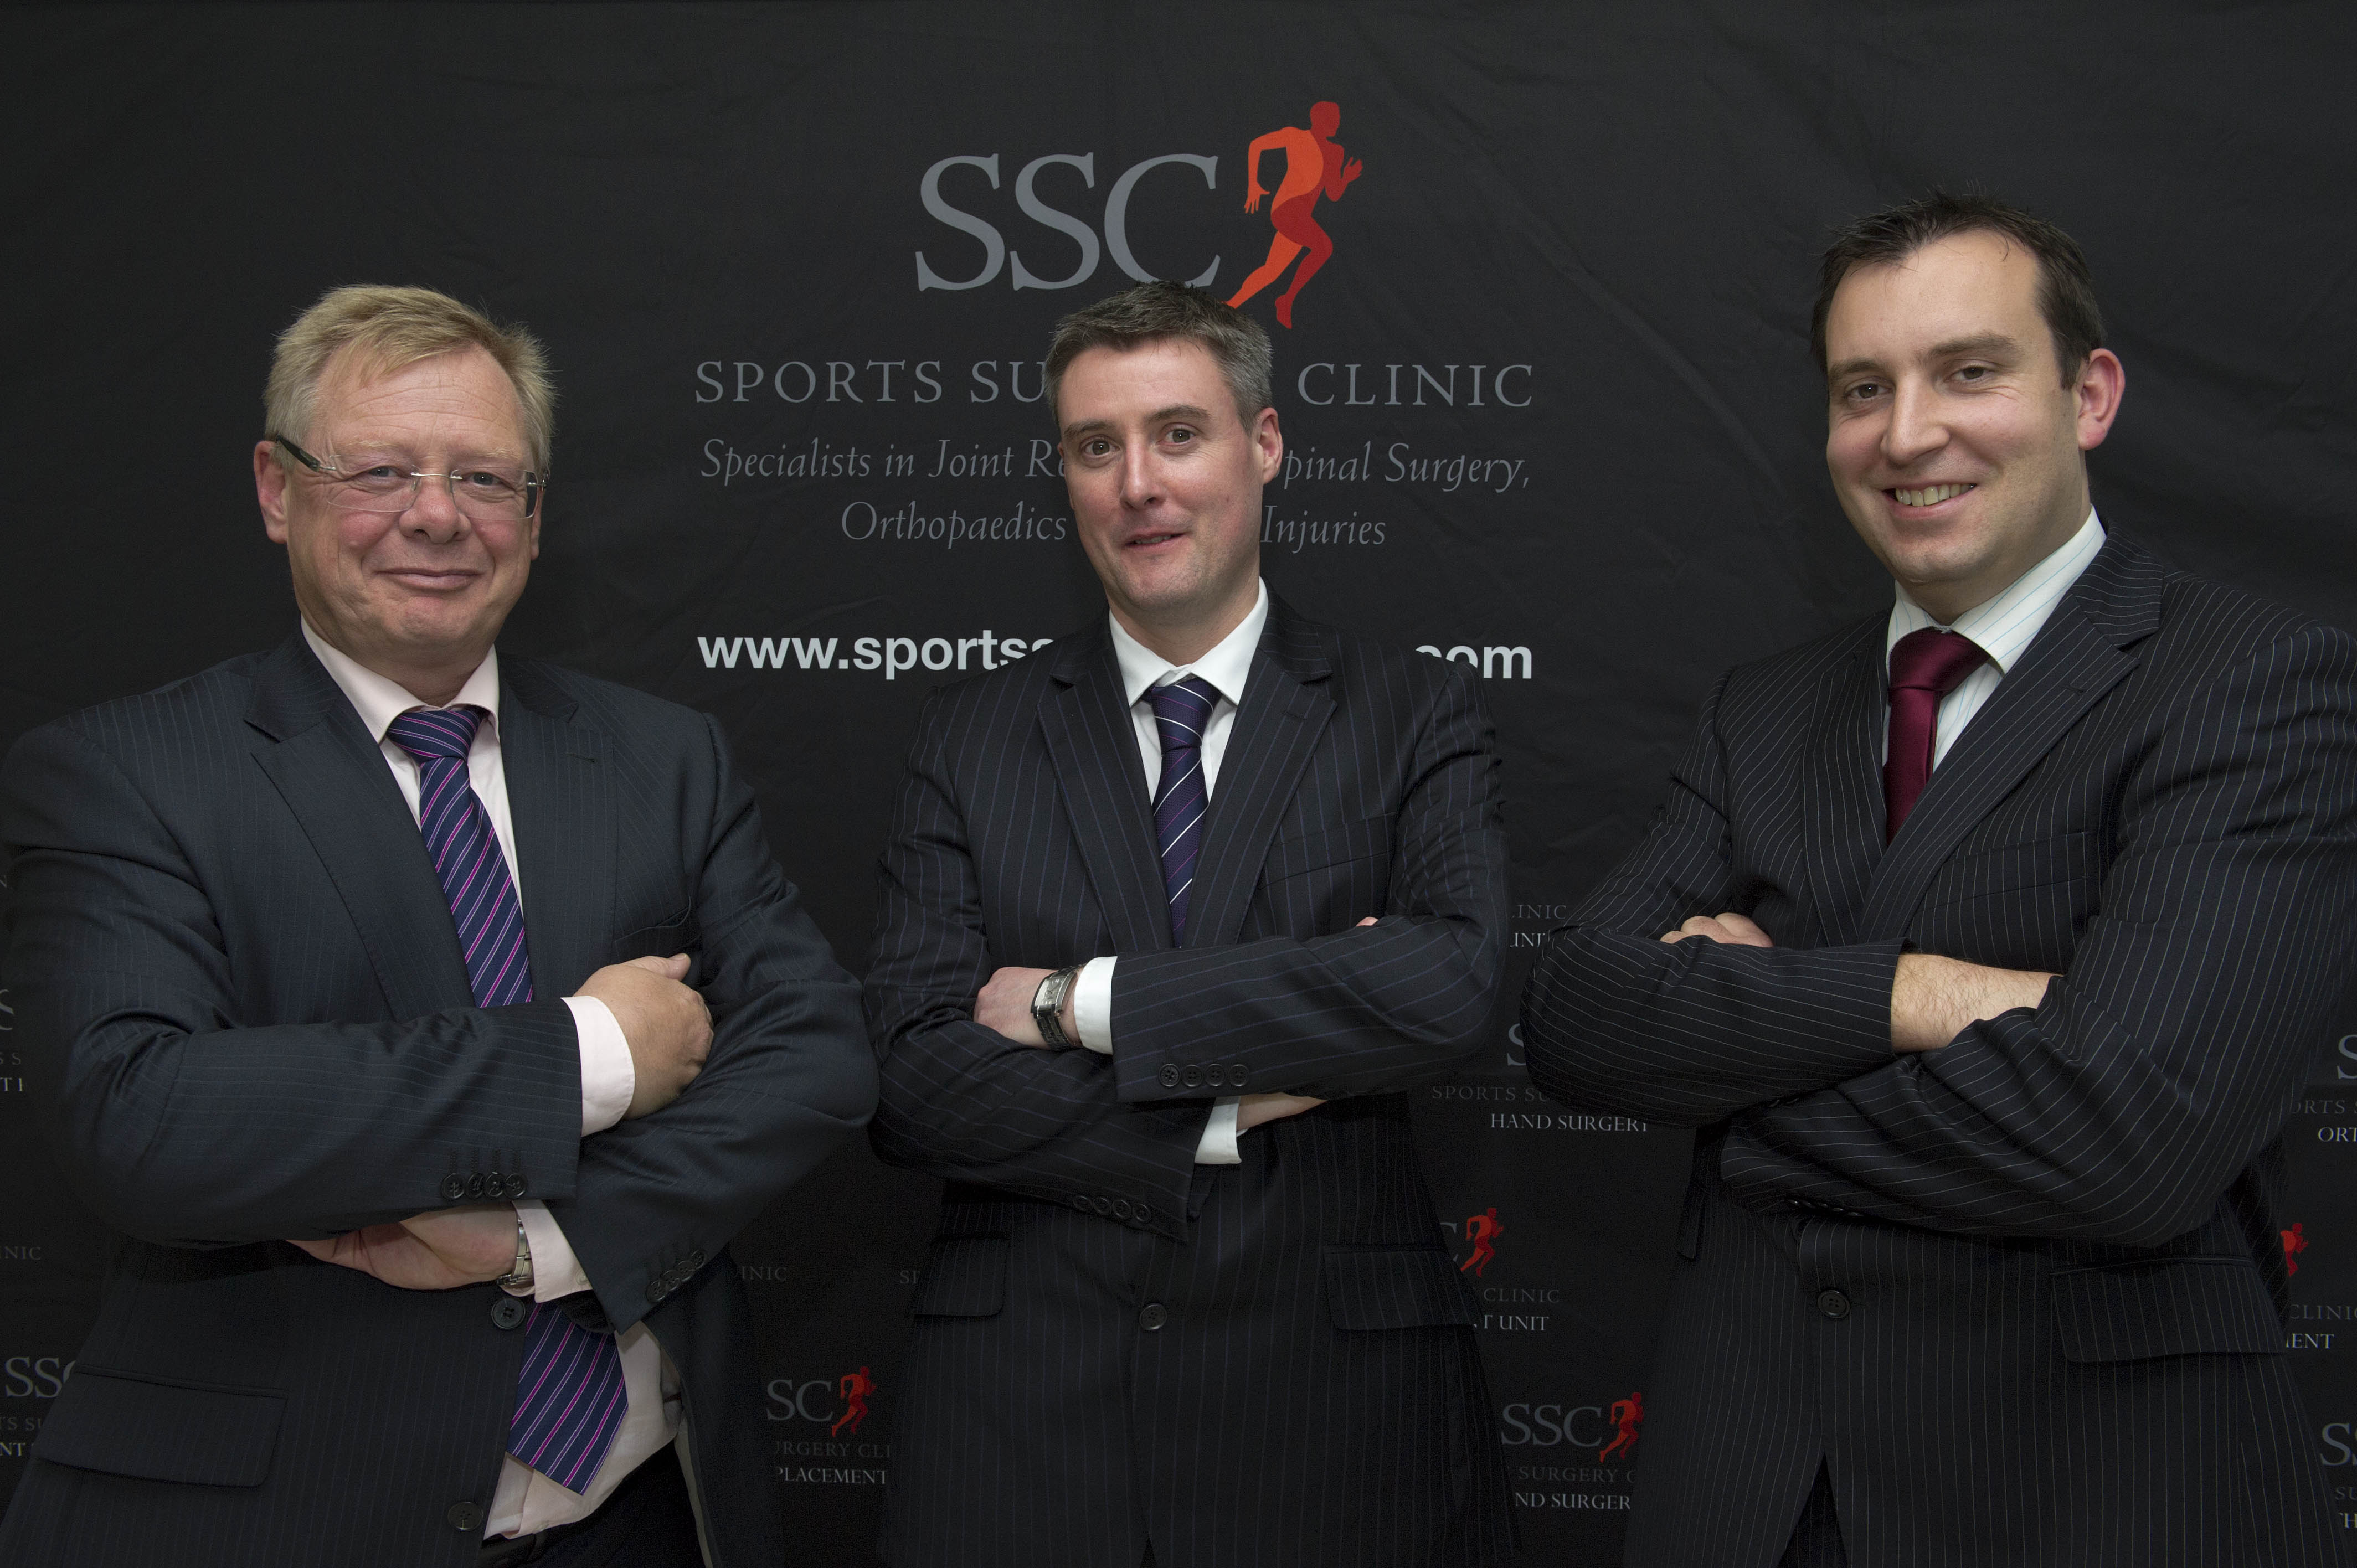 Ergo IT Managed Services Sports Surgery Clinic